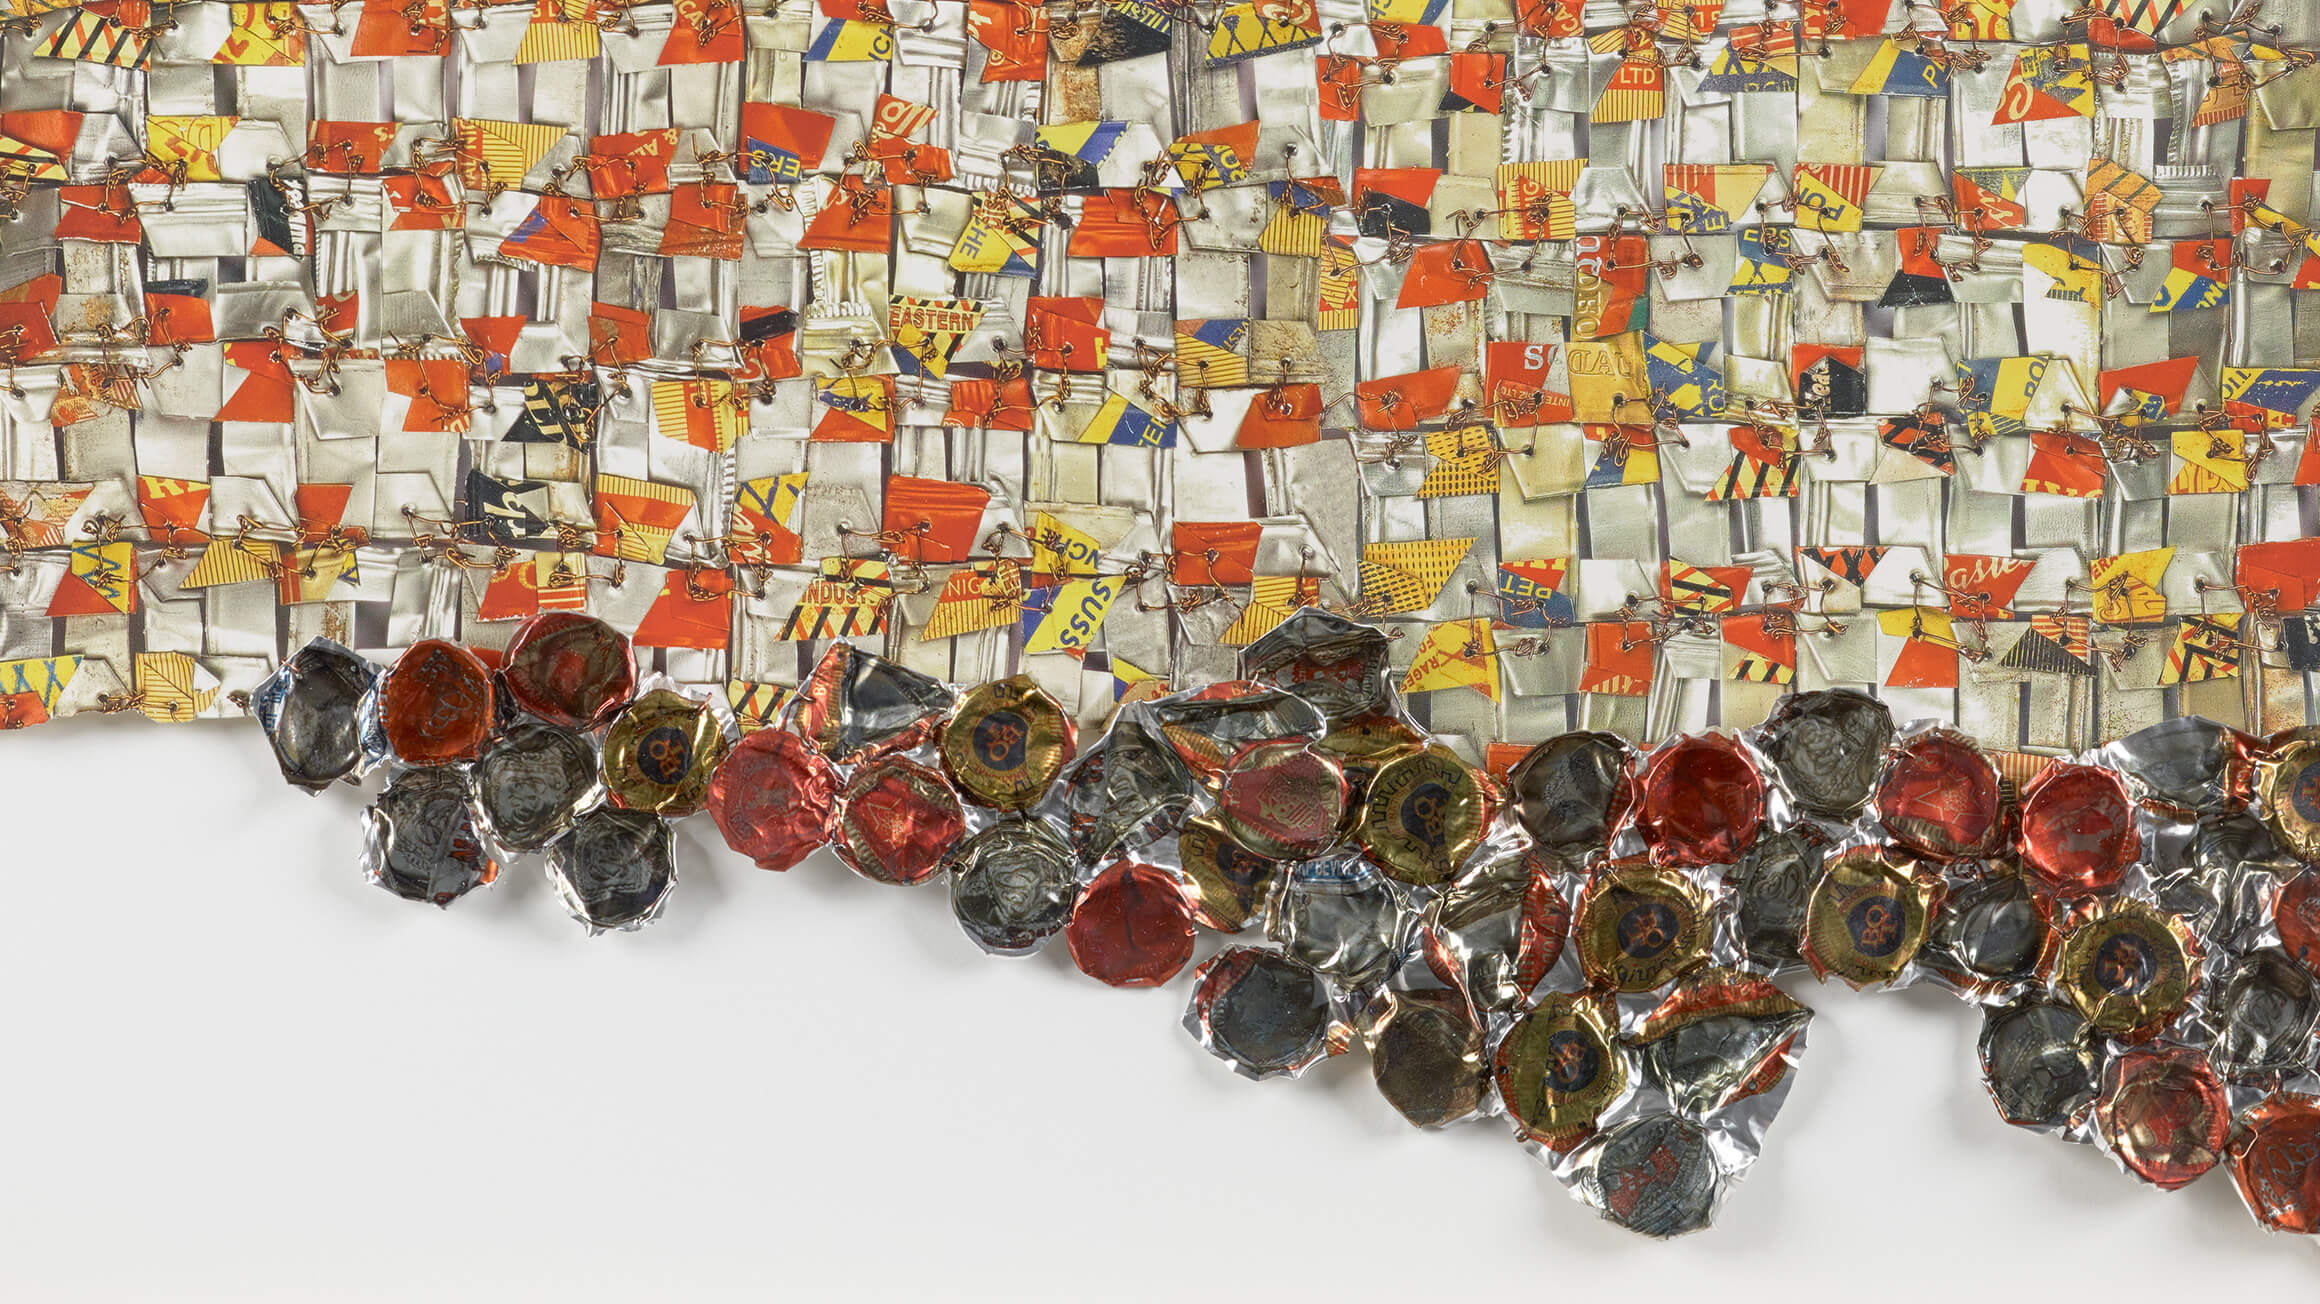 Paper and Gold (detail), 2017, by El Anatsui (Ghanaian, born 1944), 2018-48-1. © El Anatsui. Courtesy of the artist and Jack Shainman Gallery, New York